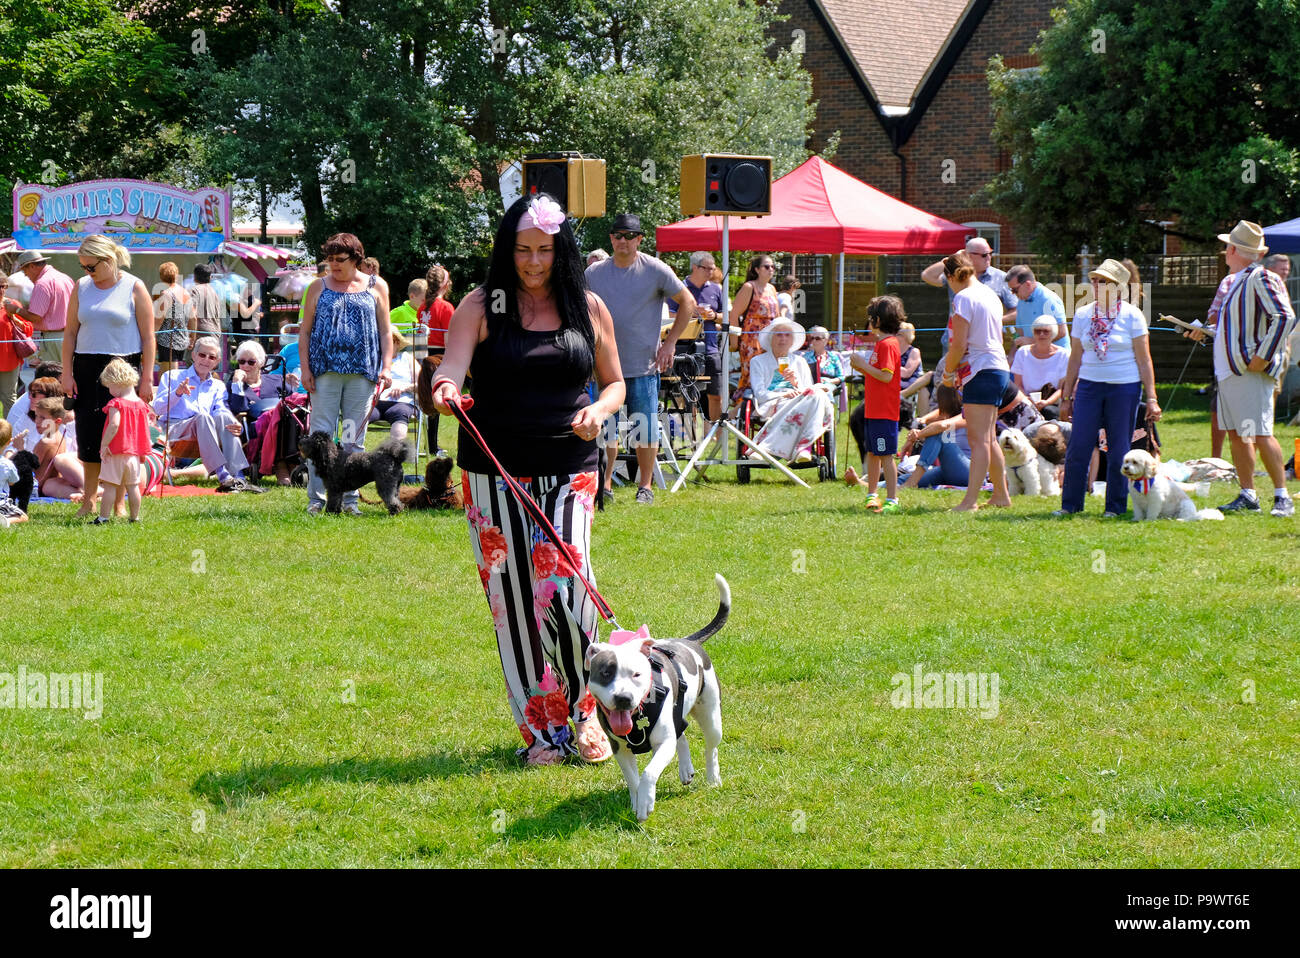 East Preston, West Sussex, UK. Fun dog show held on village green - colourfully dressed woman showing her pet Staffie - Stock Image